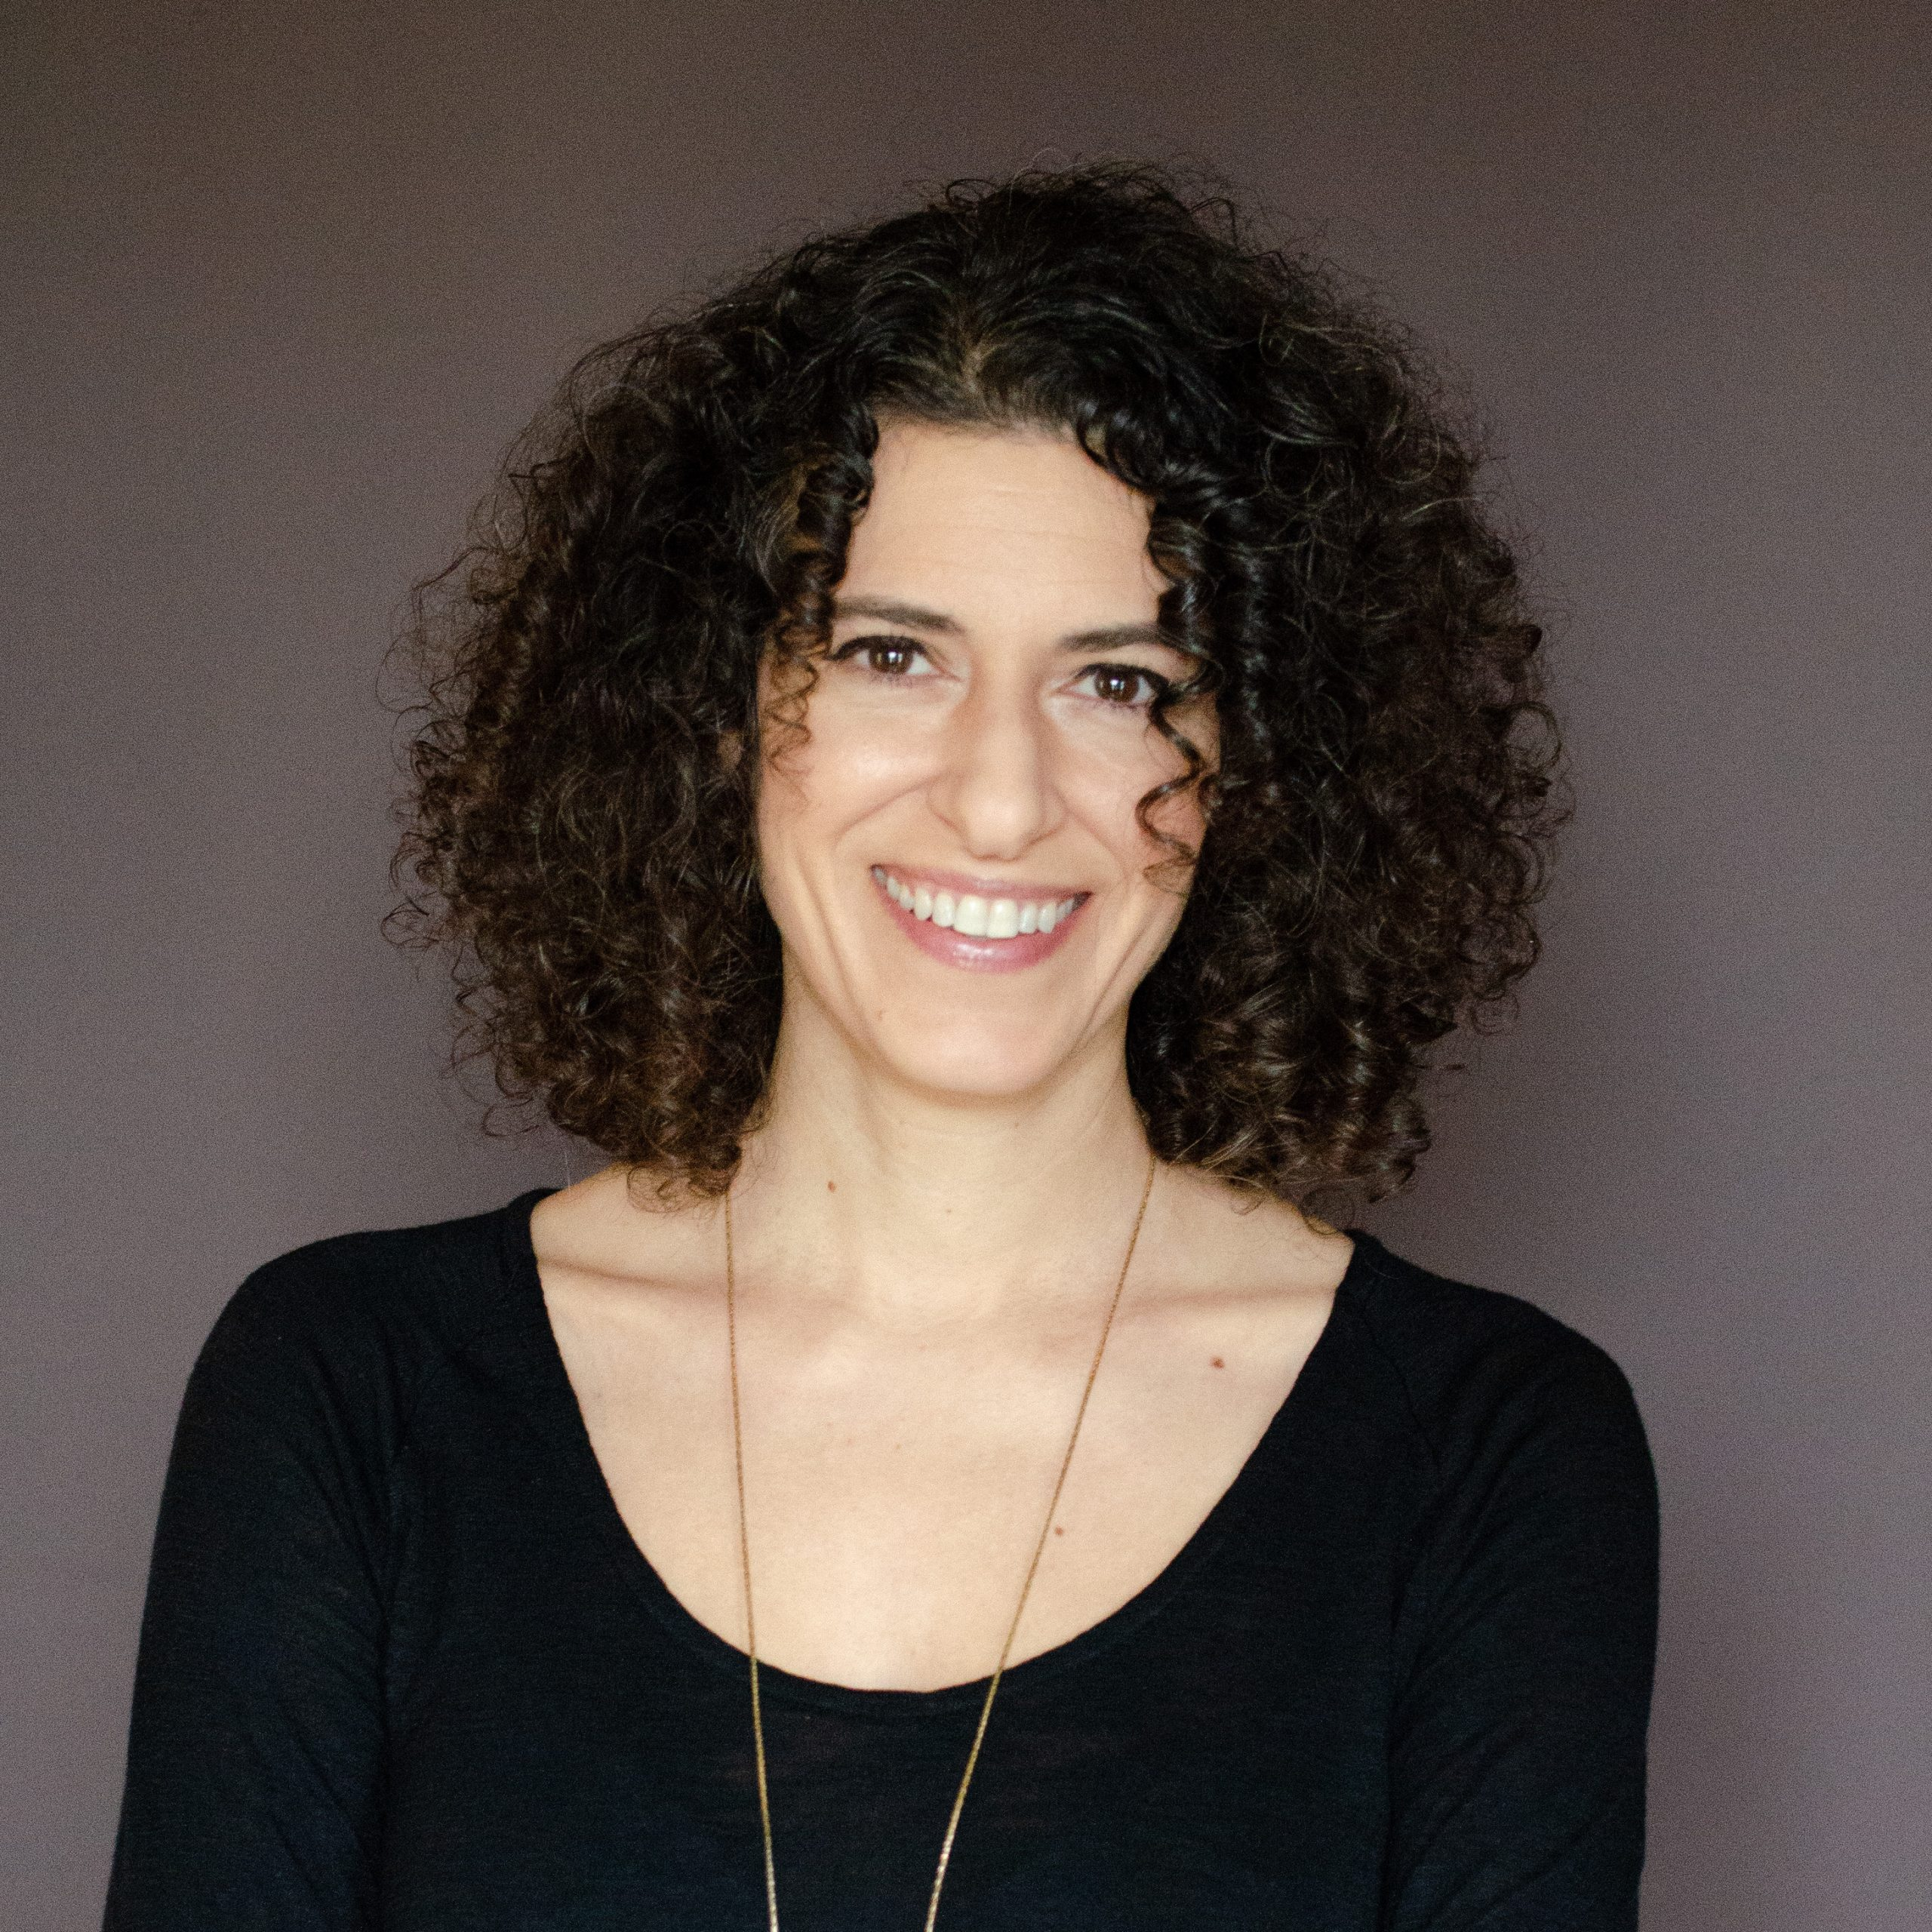 Woman with a black top and curly hair standing in front of a blank wall